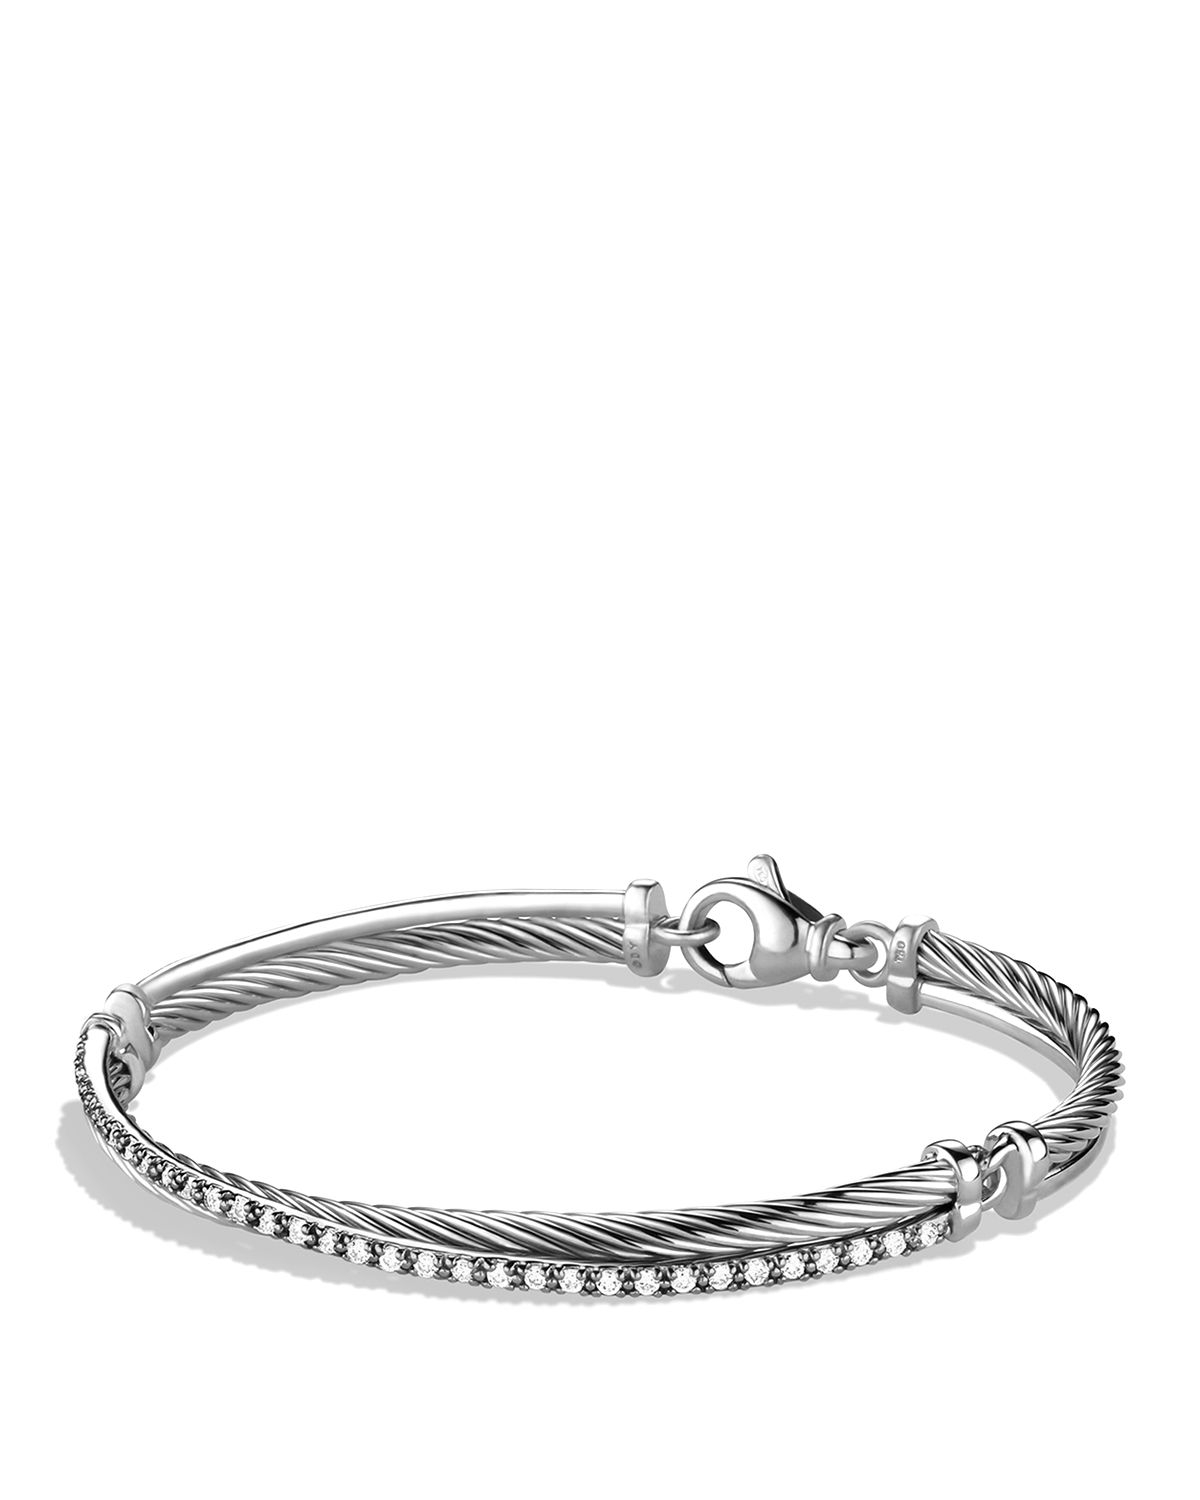 David Yurman Charm Bracelet: David Yurman Crossover Bracelet With Diamonds In Silver